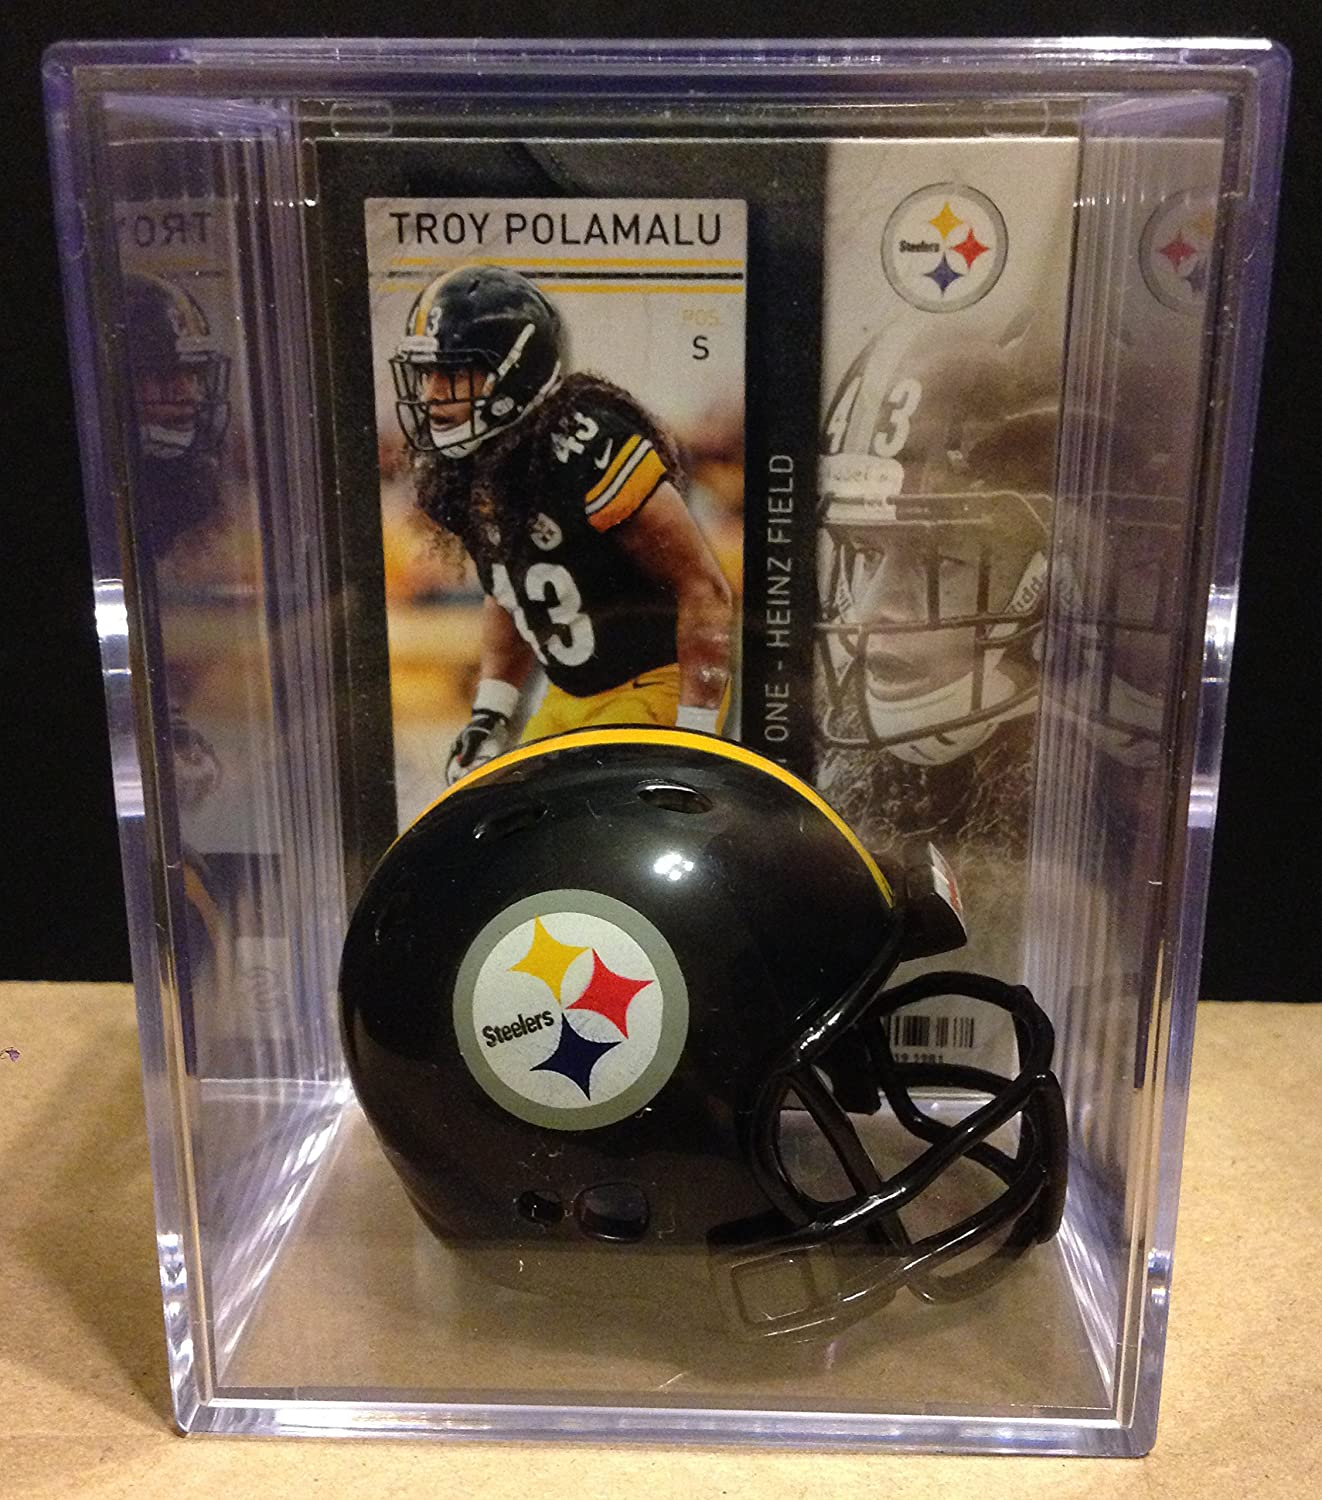 Pittsburgh Steelers NFL Helmet Manufacturer OFFicial shop Shadowbox Polamalu In stock Troy w card